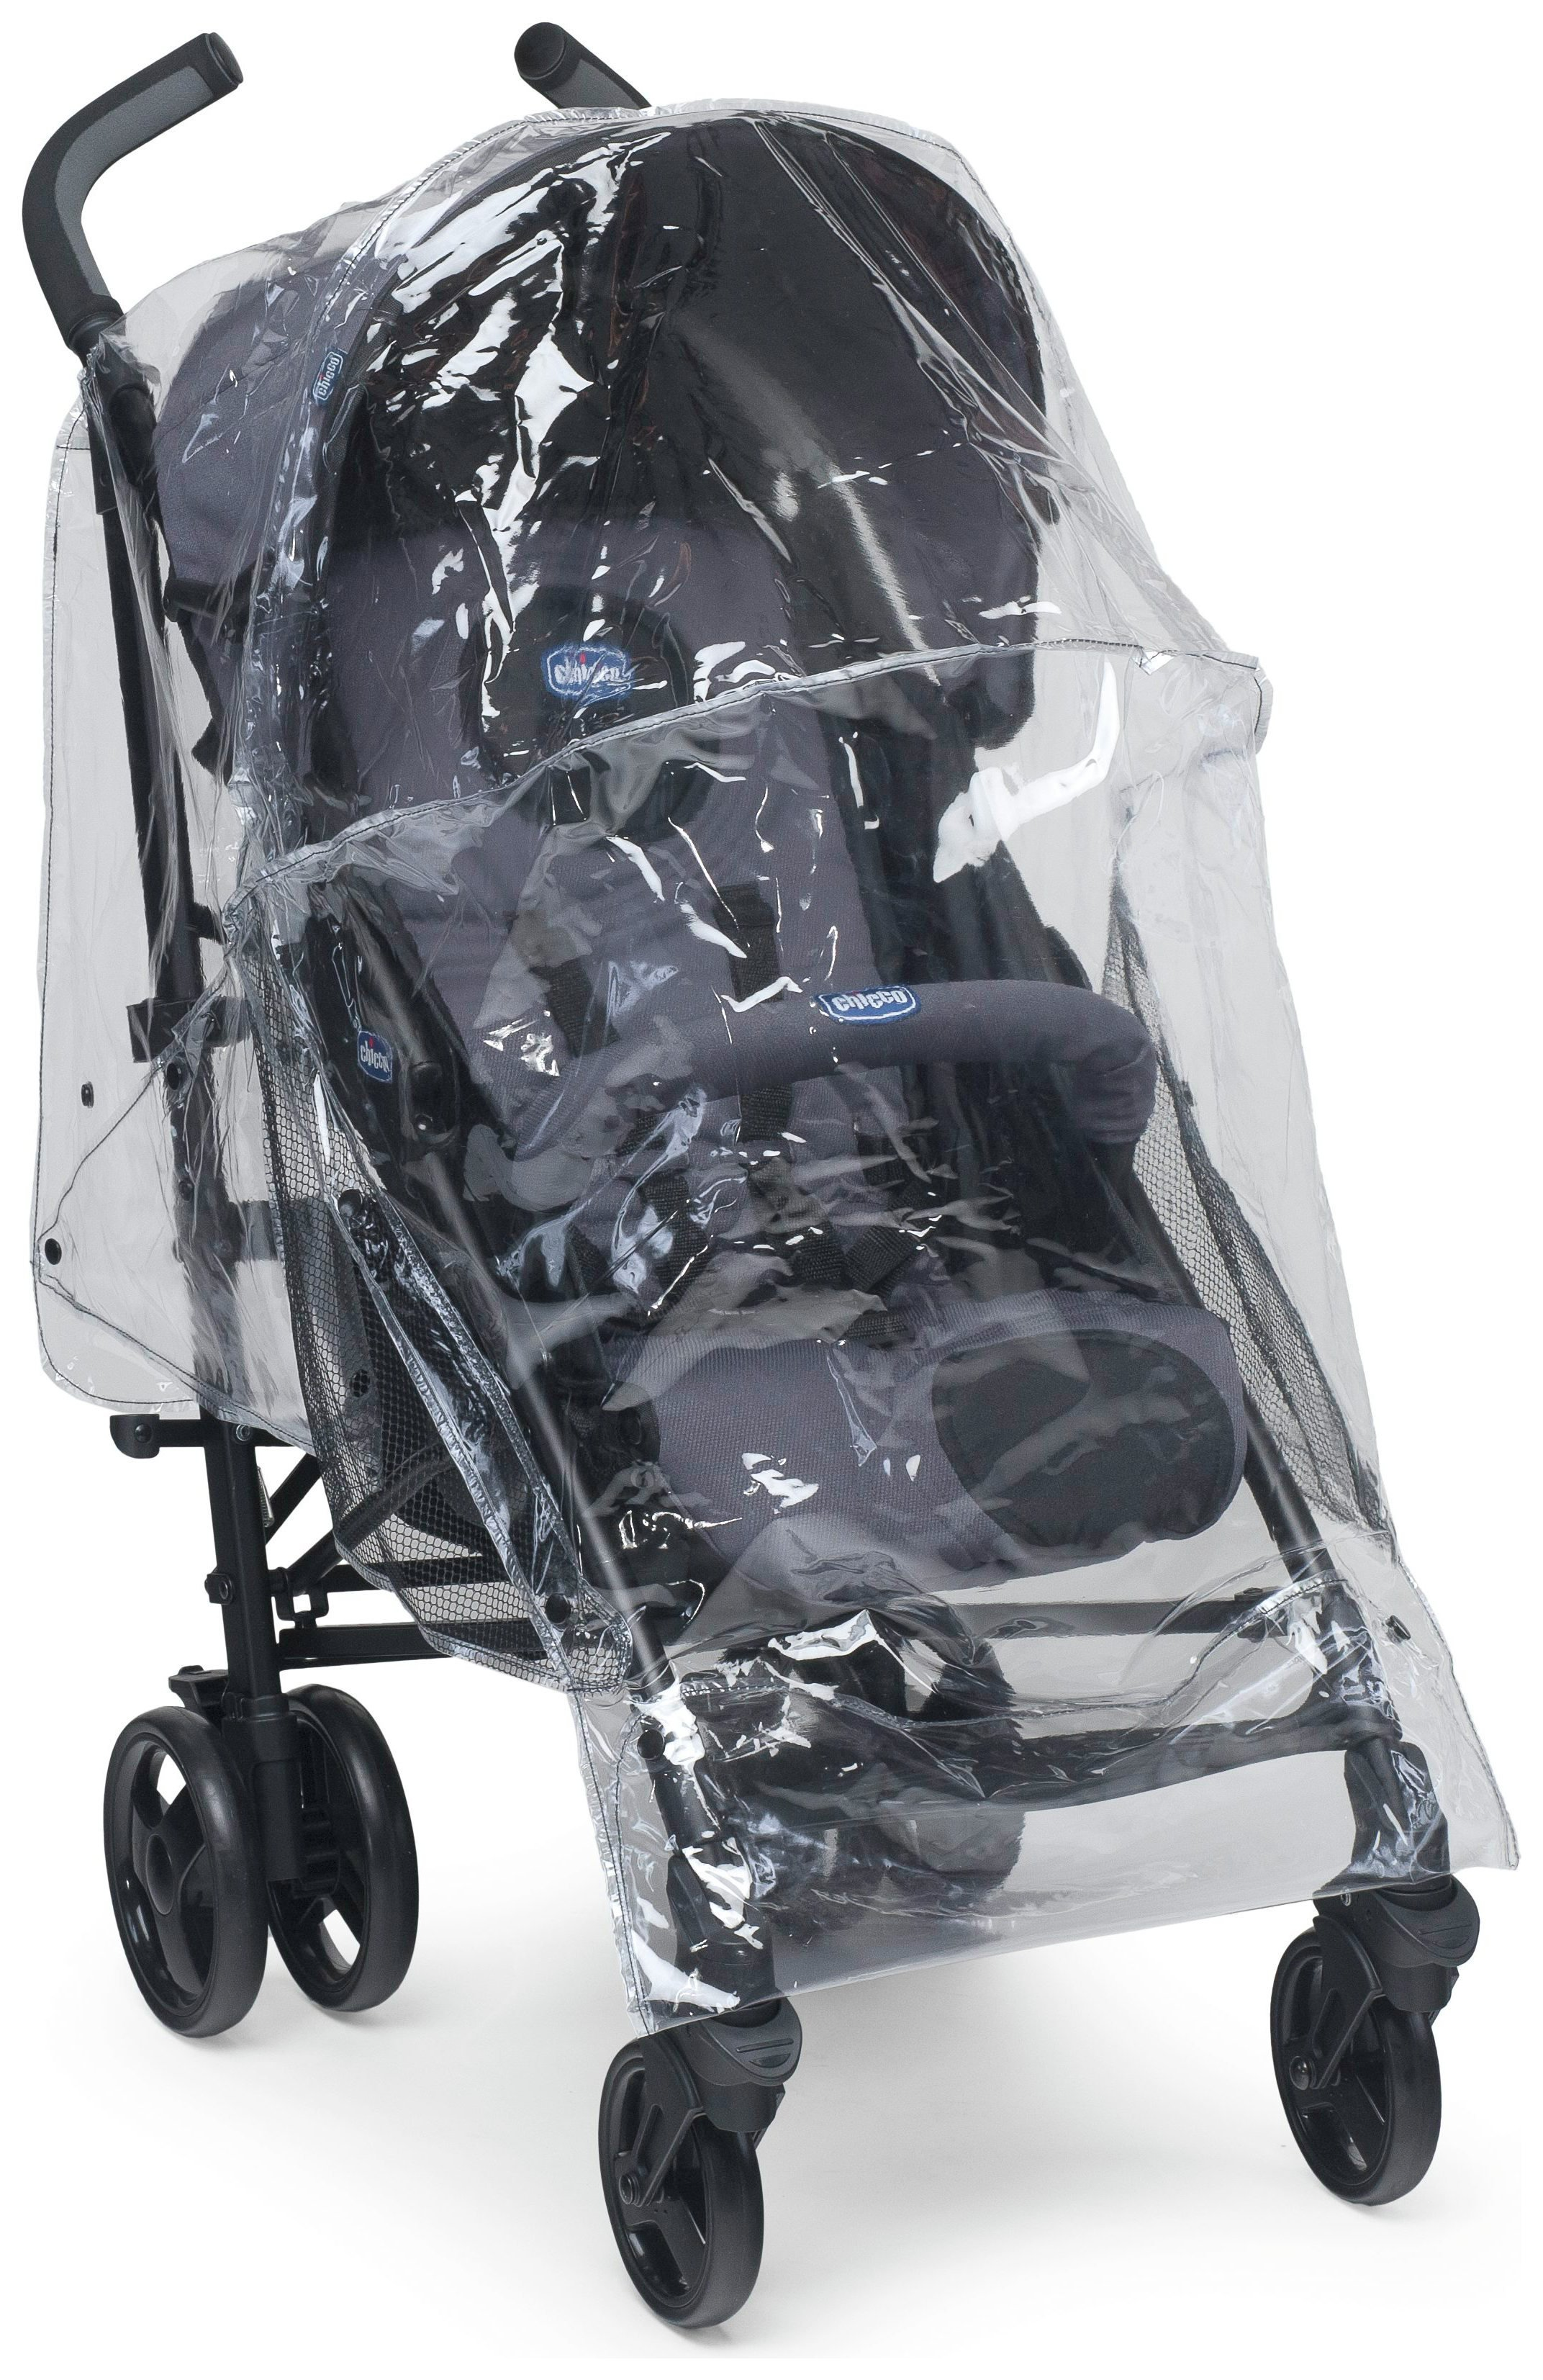 Image of Chicco Deluxe Stroller Raincover.